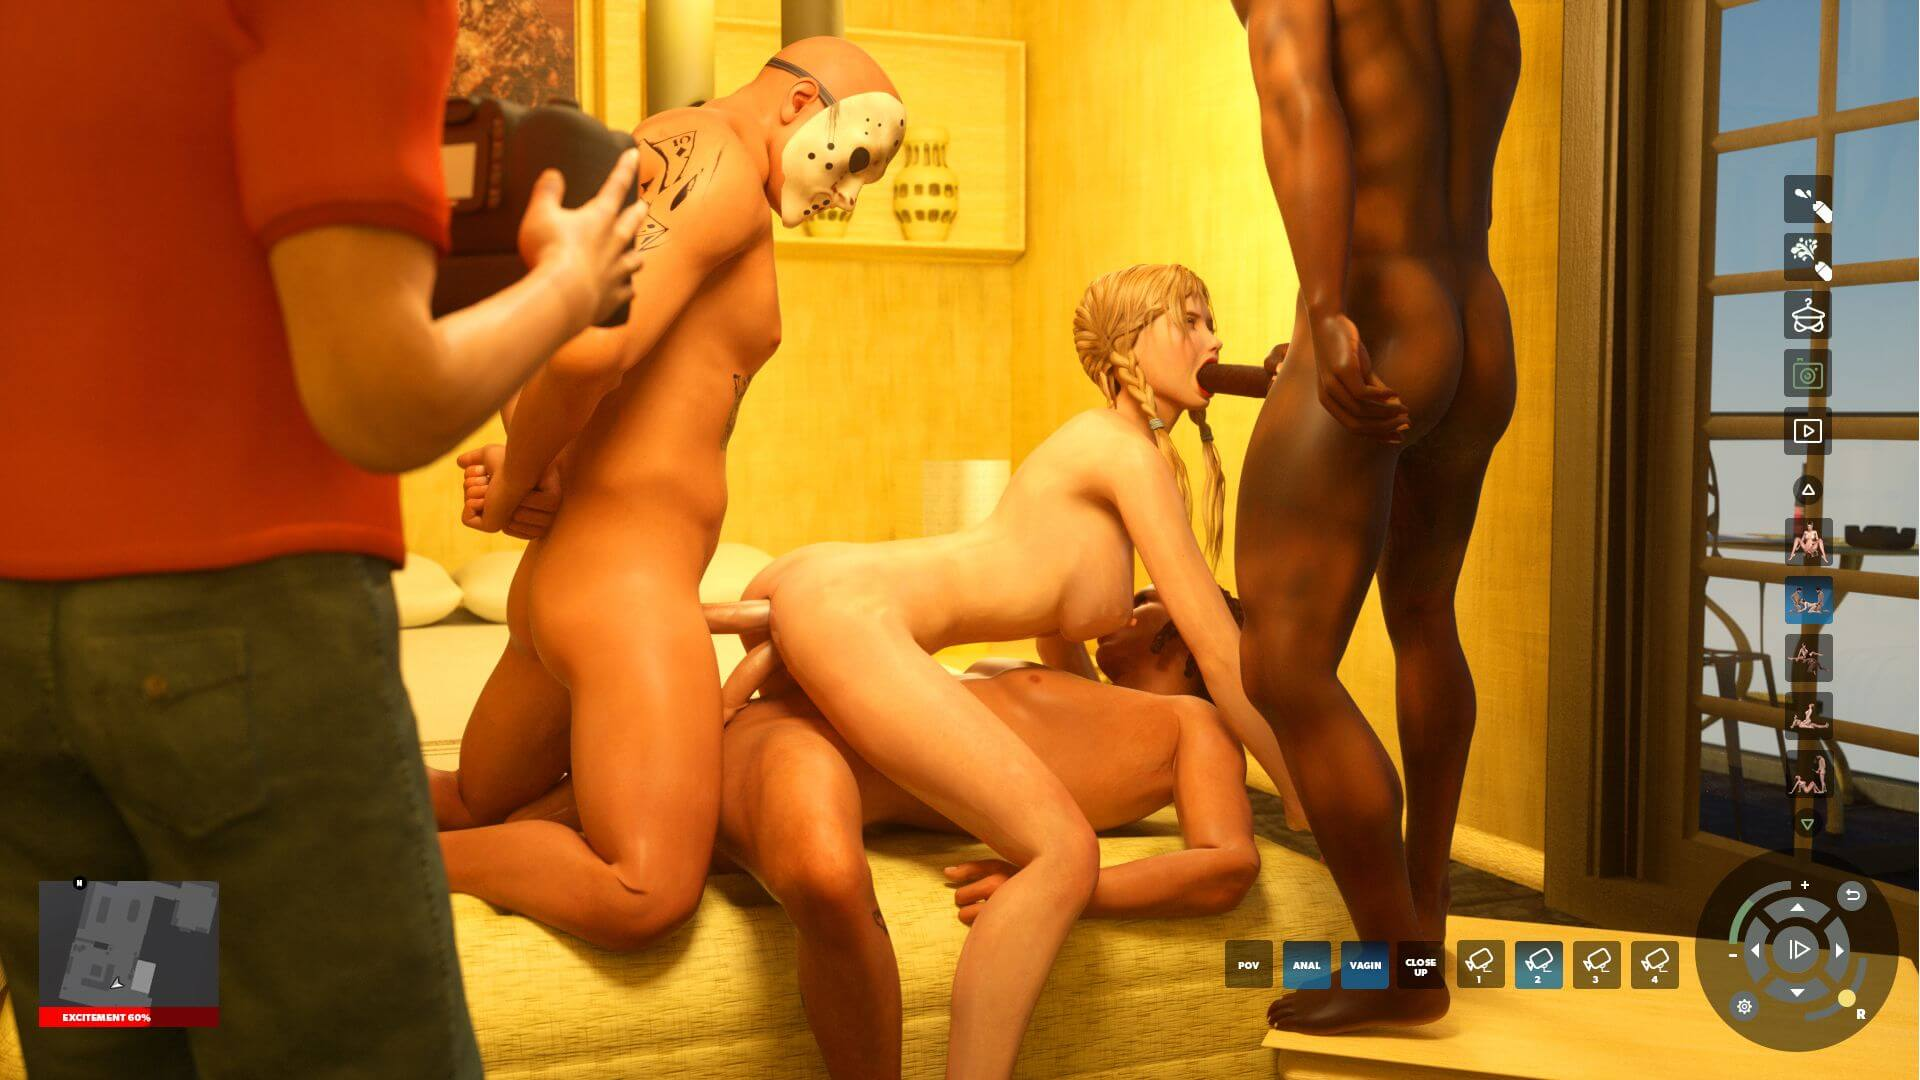 Hd sexy games screenshot erotica image